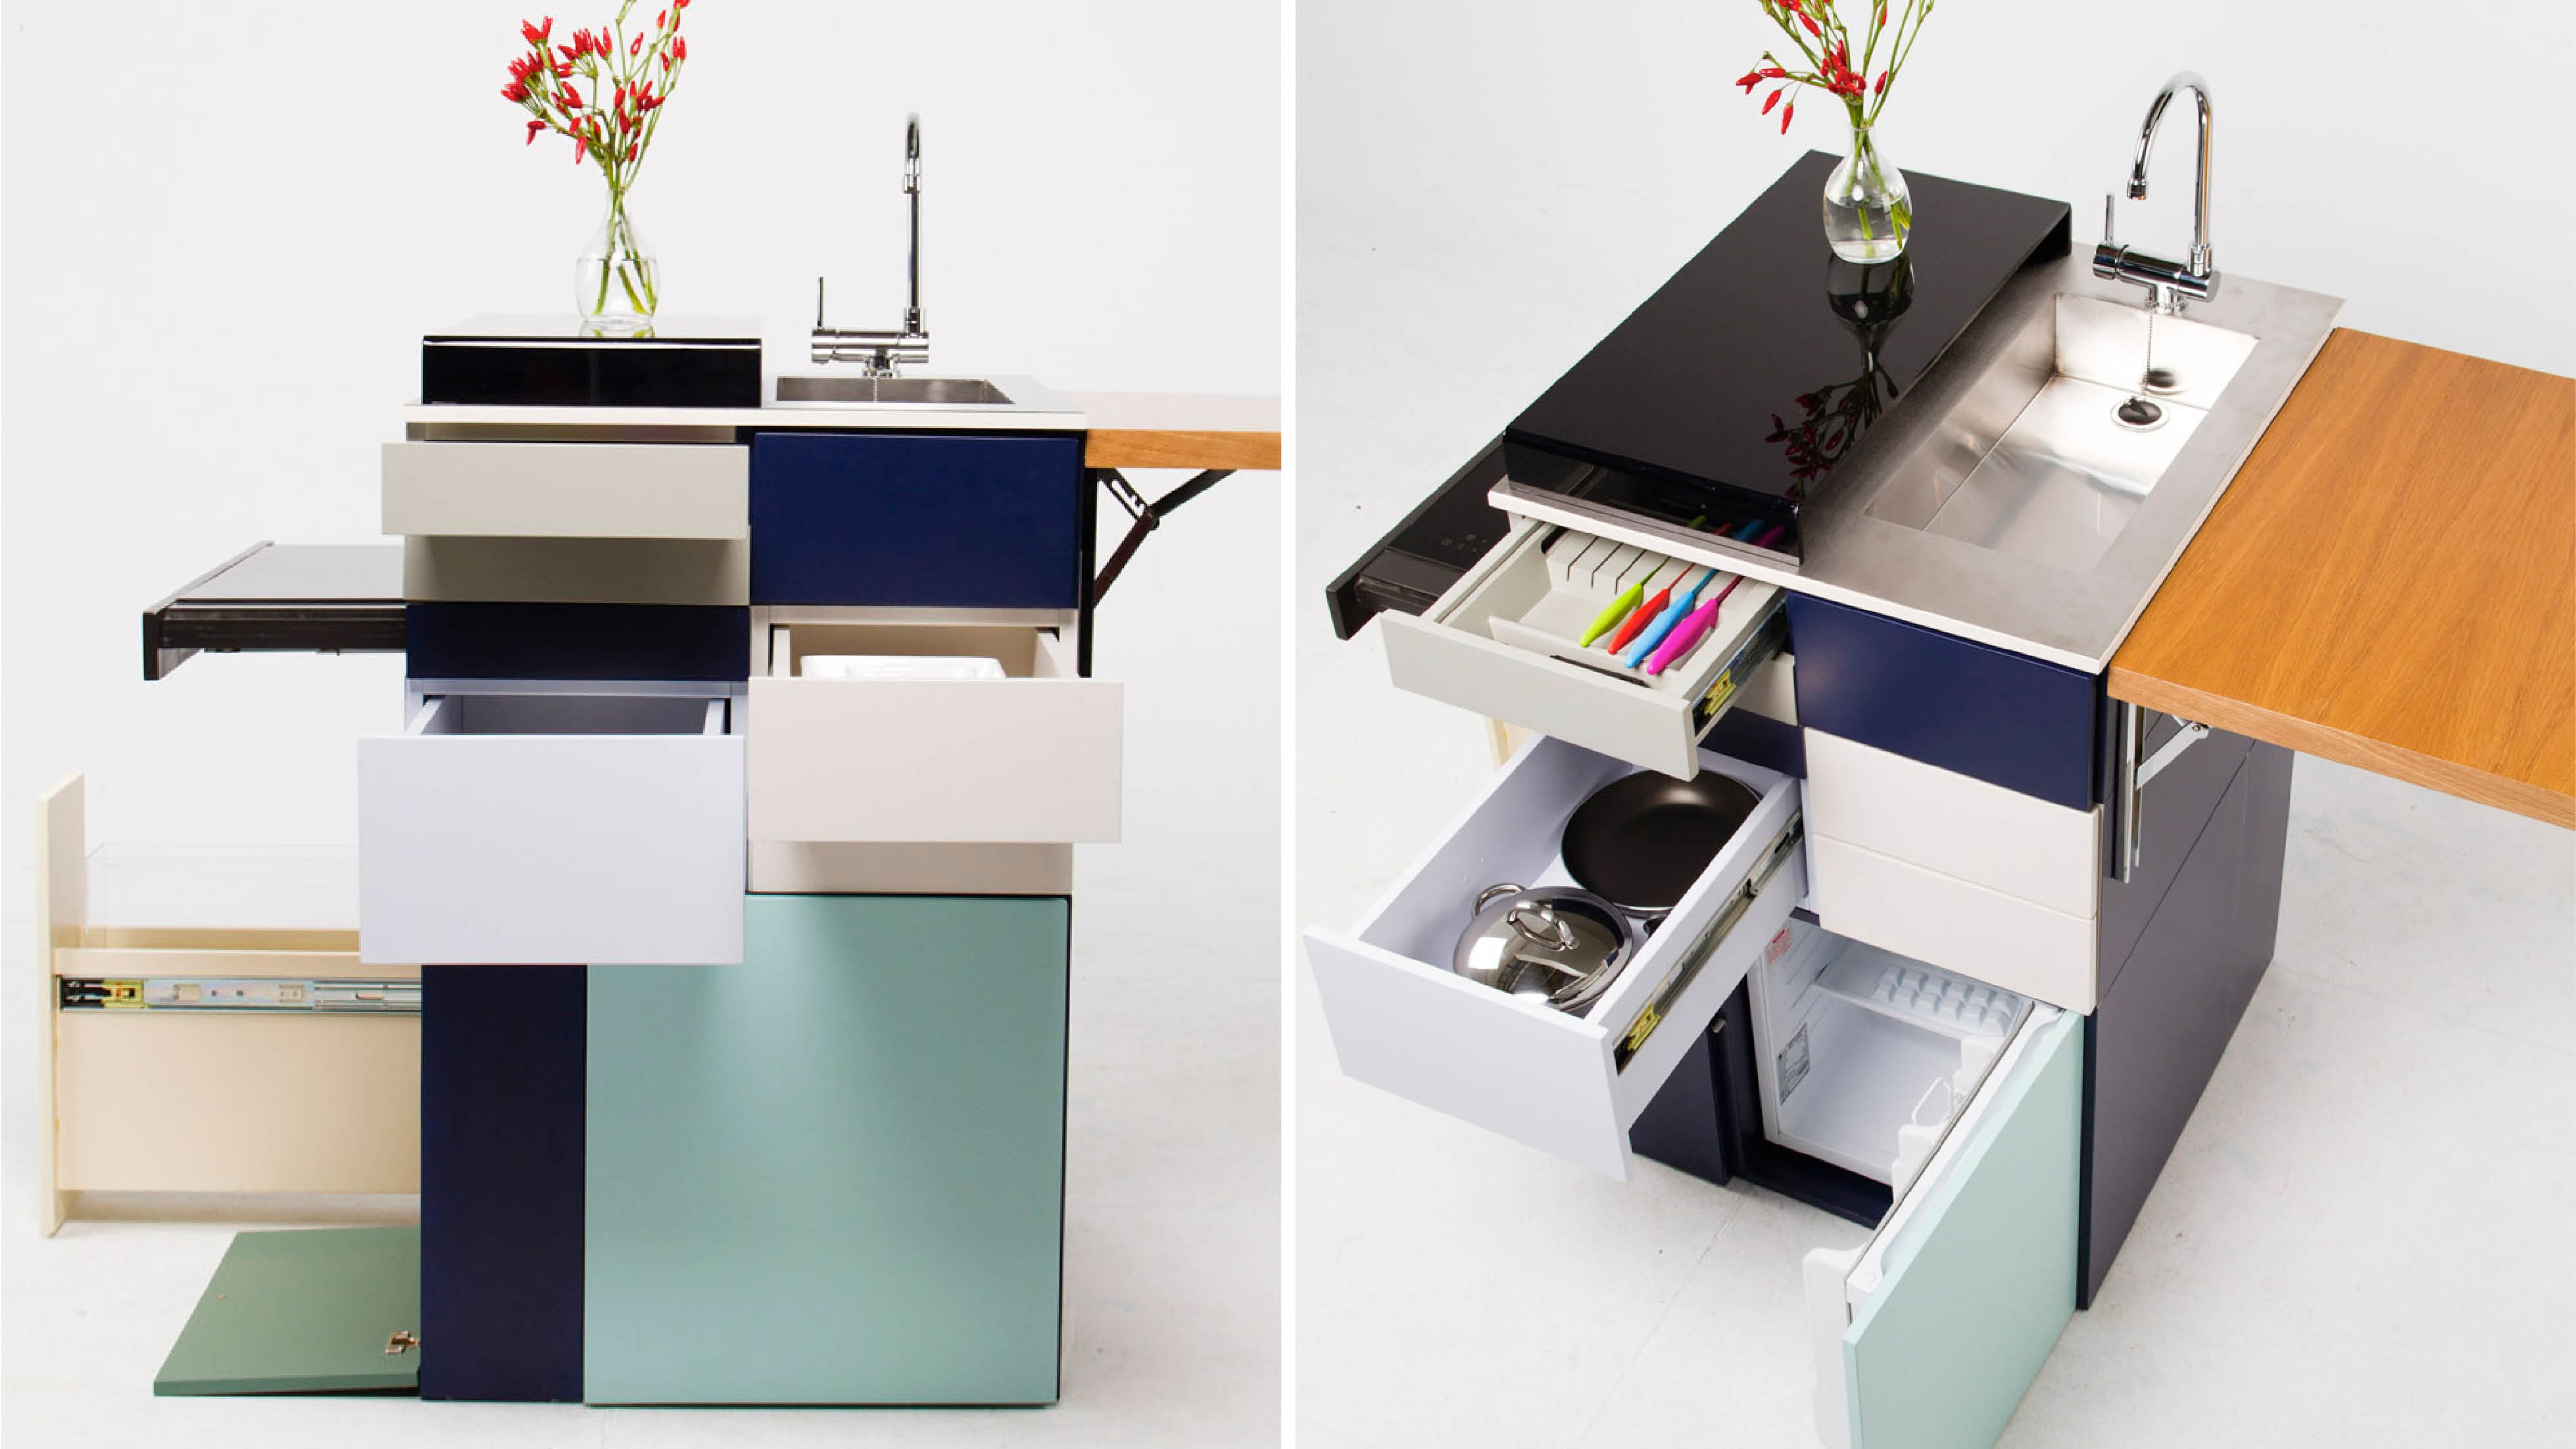 Design Compact Kitchen compact kitchen by ana arana stylus innovation research advisory